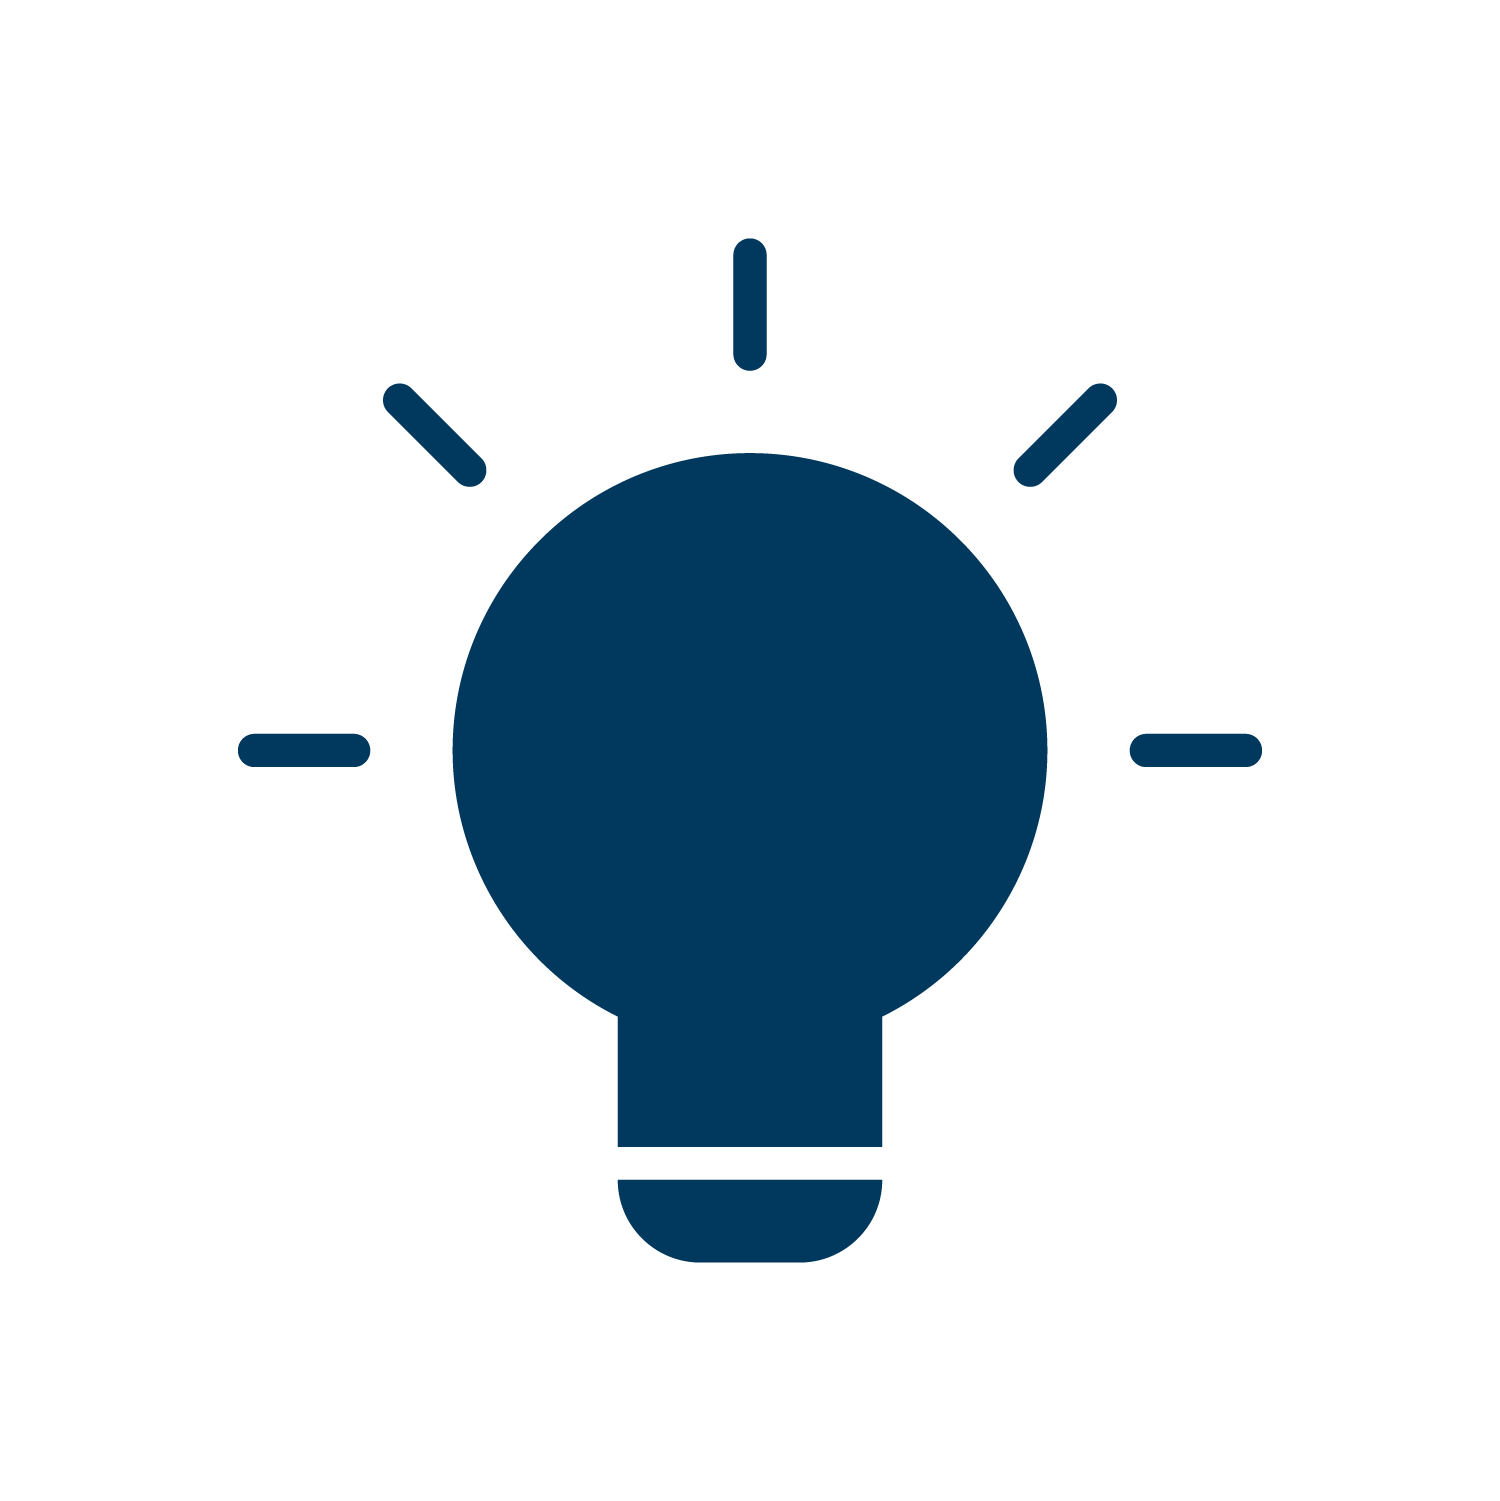 Intellectual wellbeing icon lightbulb